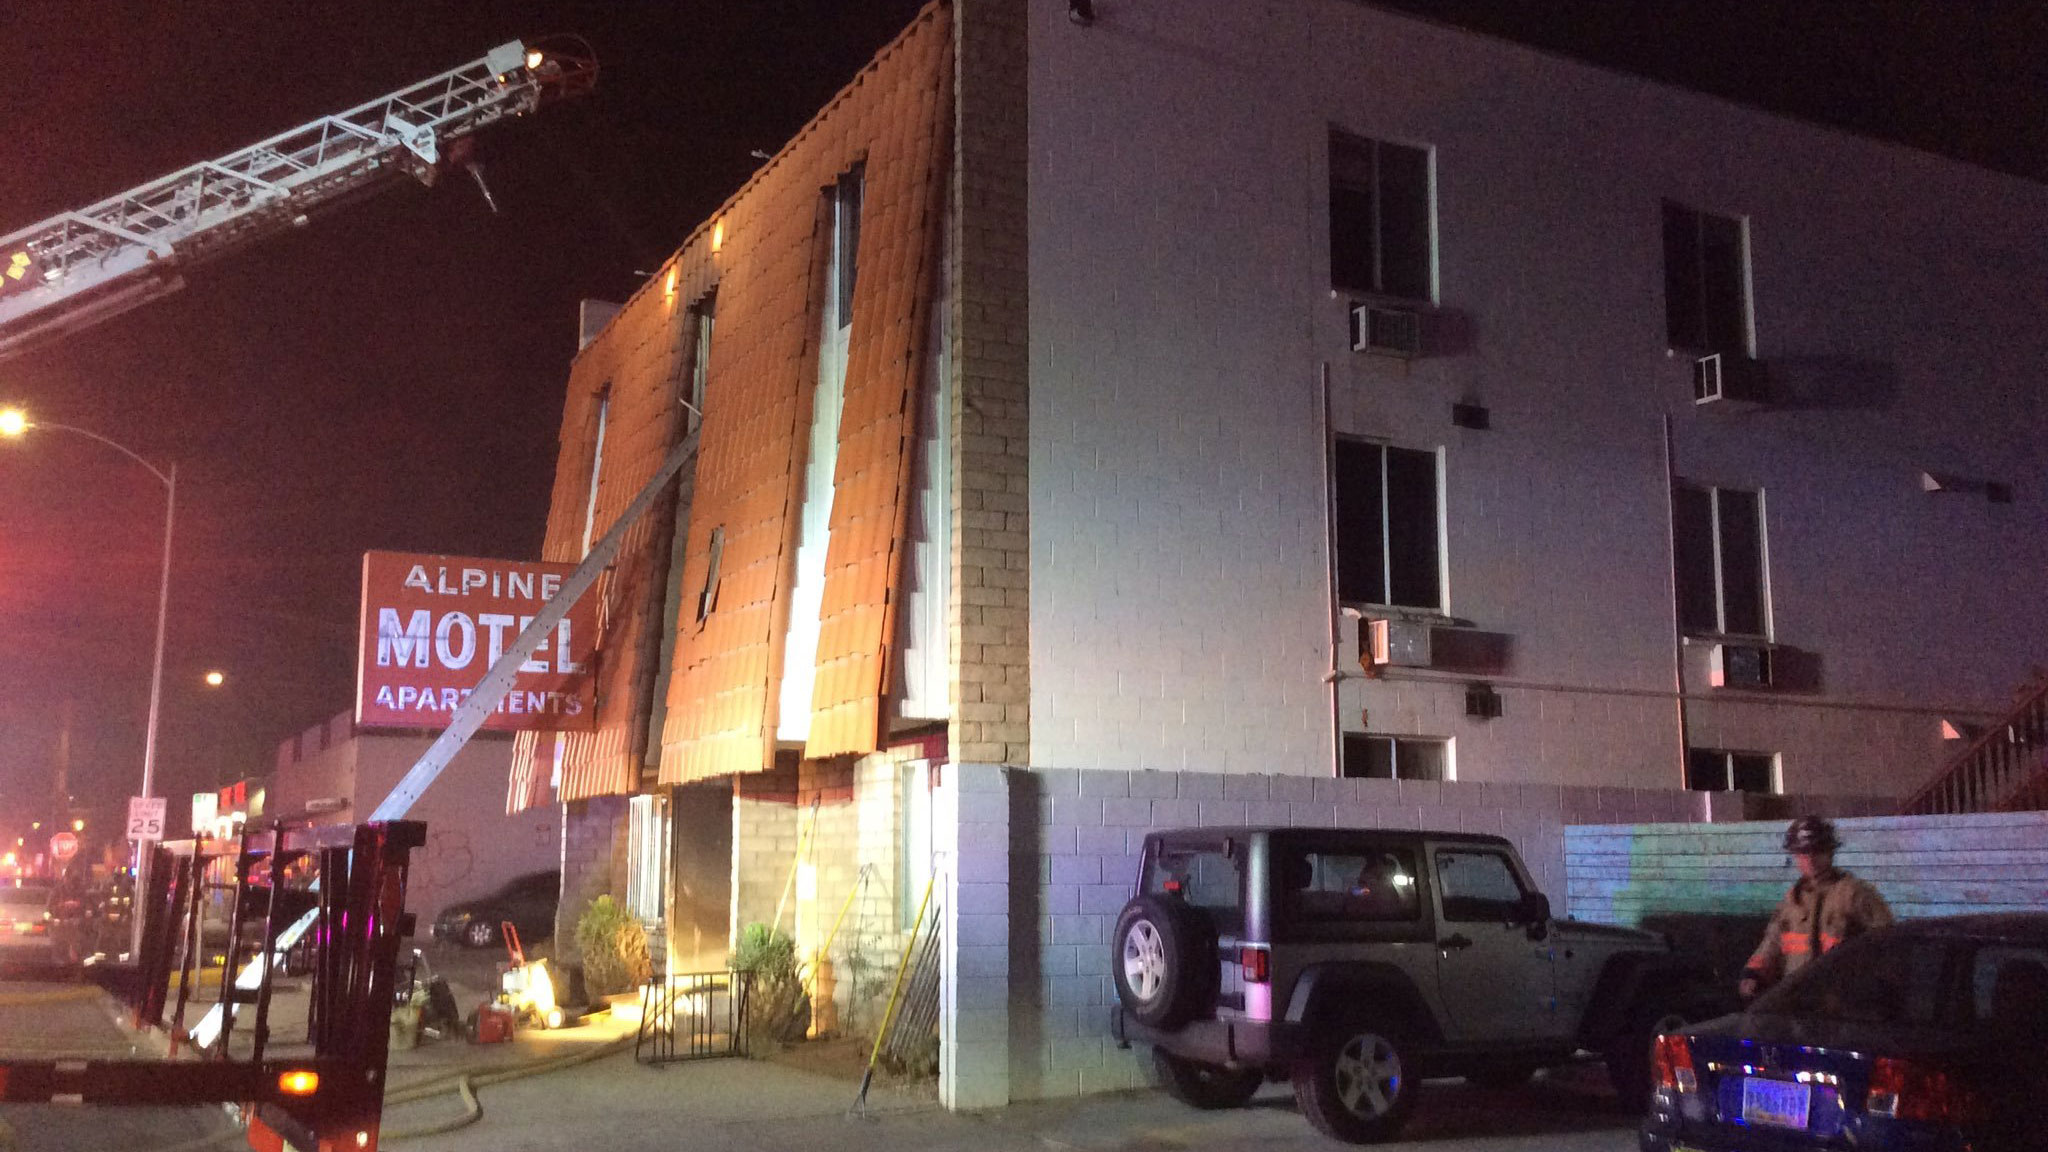 Six people were killed in a fire at this apartment building in Las Vegas on Dec. 21, 2019. (Credit: Las Vegas Fire Department via CNN)